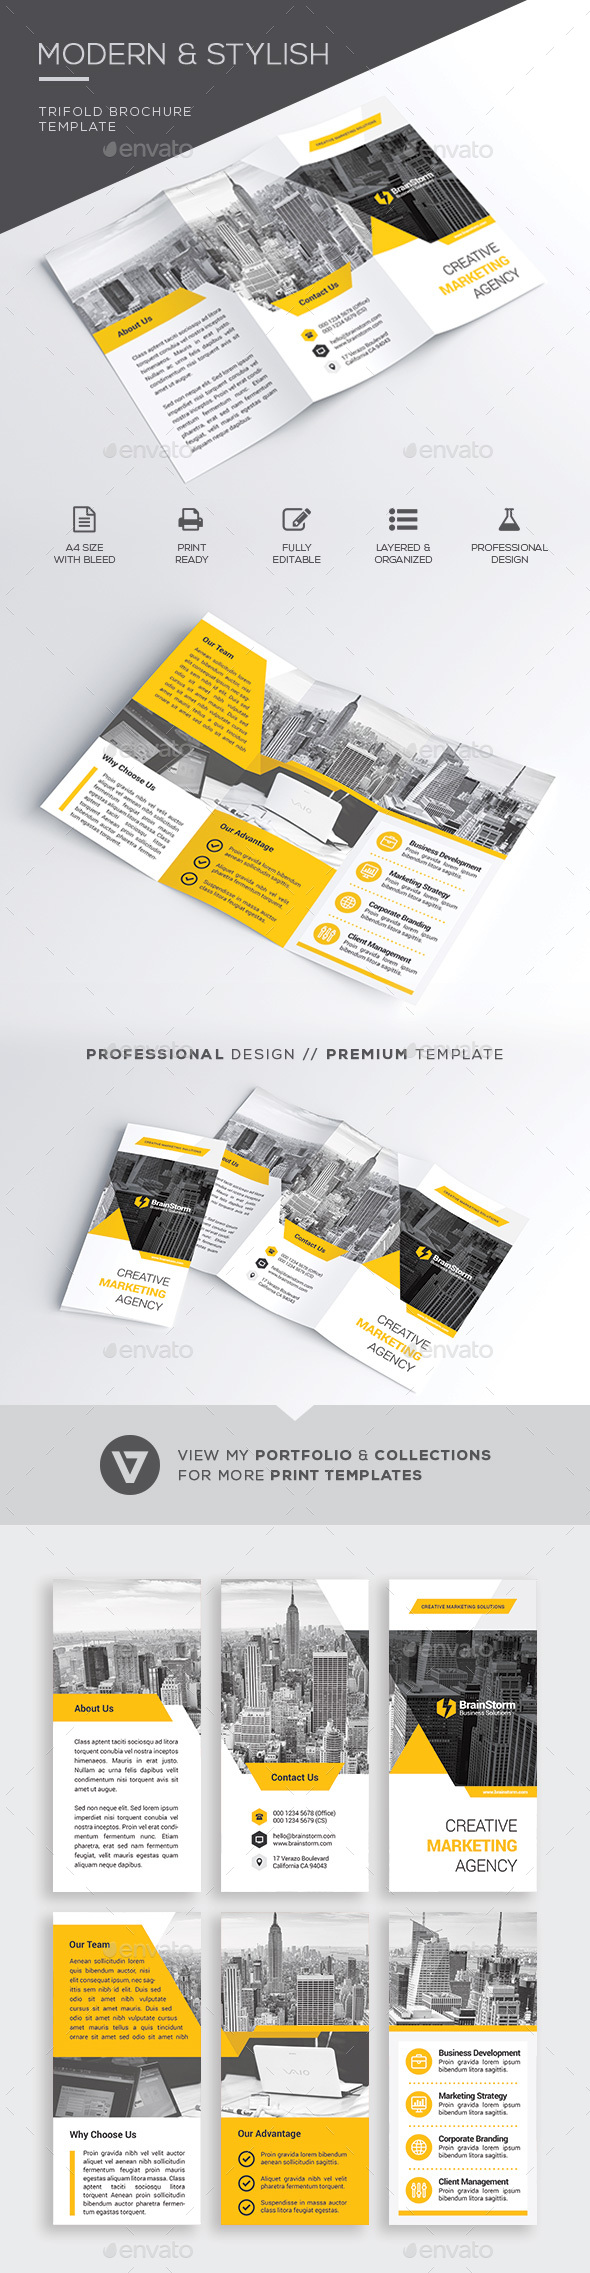 Trifold Brochure Template - Corporate Brochures